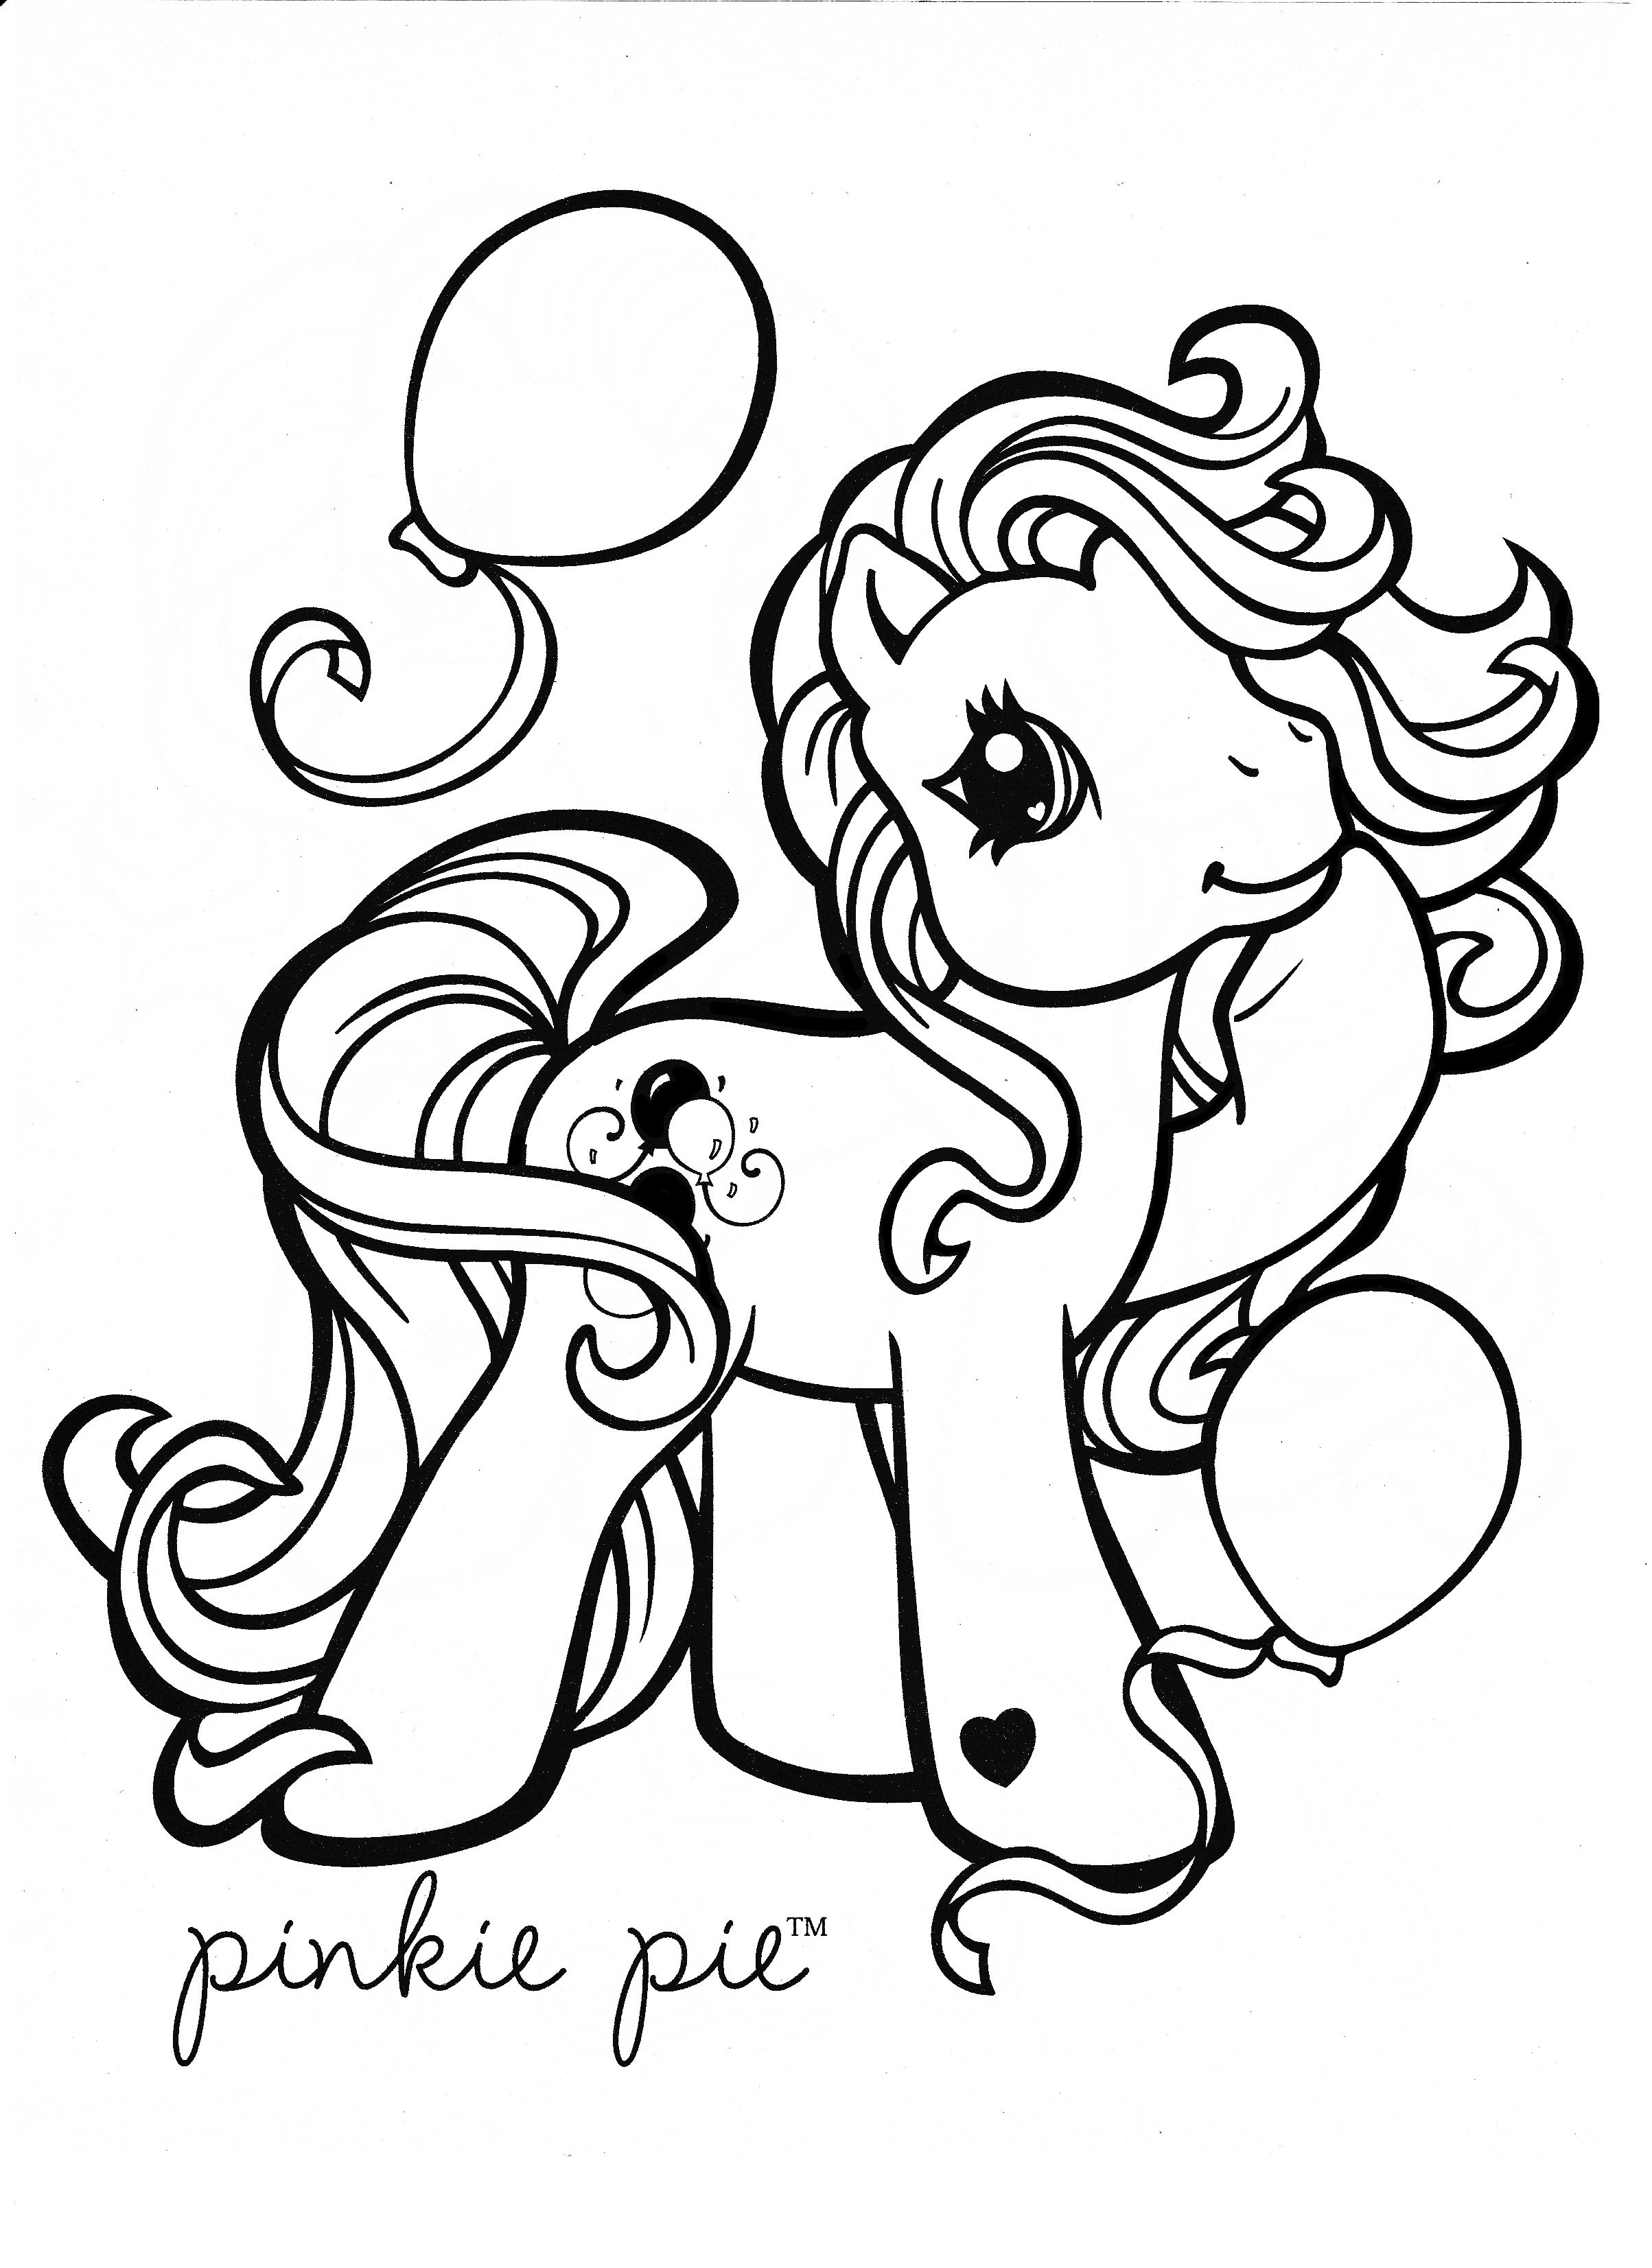 My Little Pony Coloring Page Mlp Pinkie Pie Horse Coloring Pages My Little Pony Coloring Coloring Pages